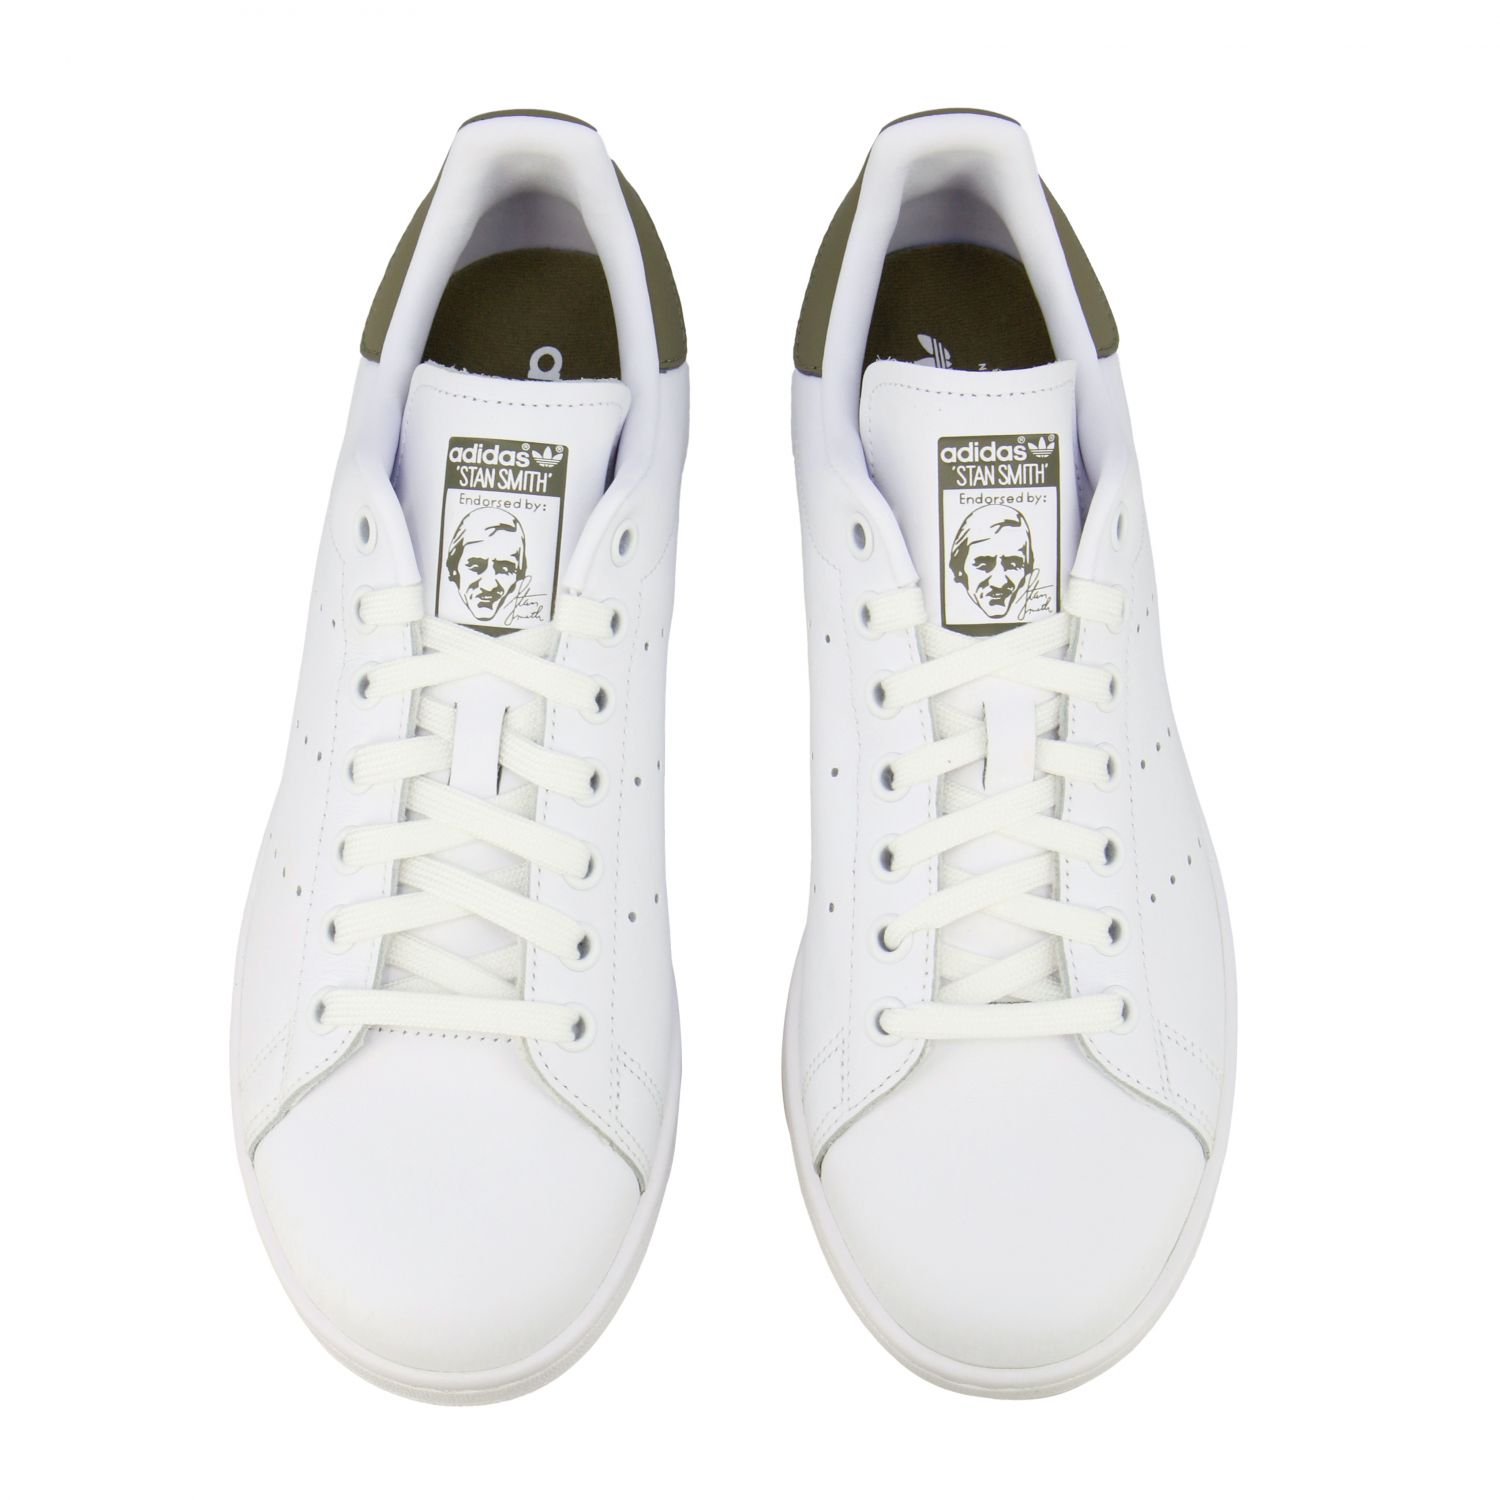 Baskets en cuir Adidas Originals Stan Smith blanc 3